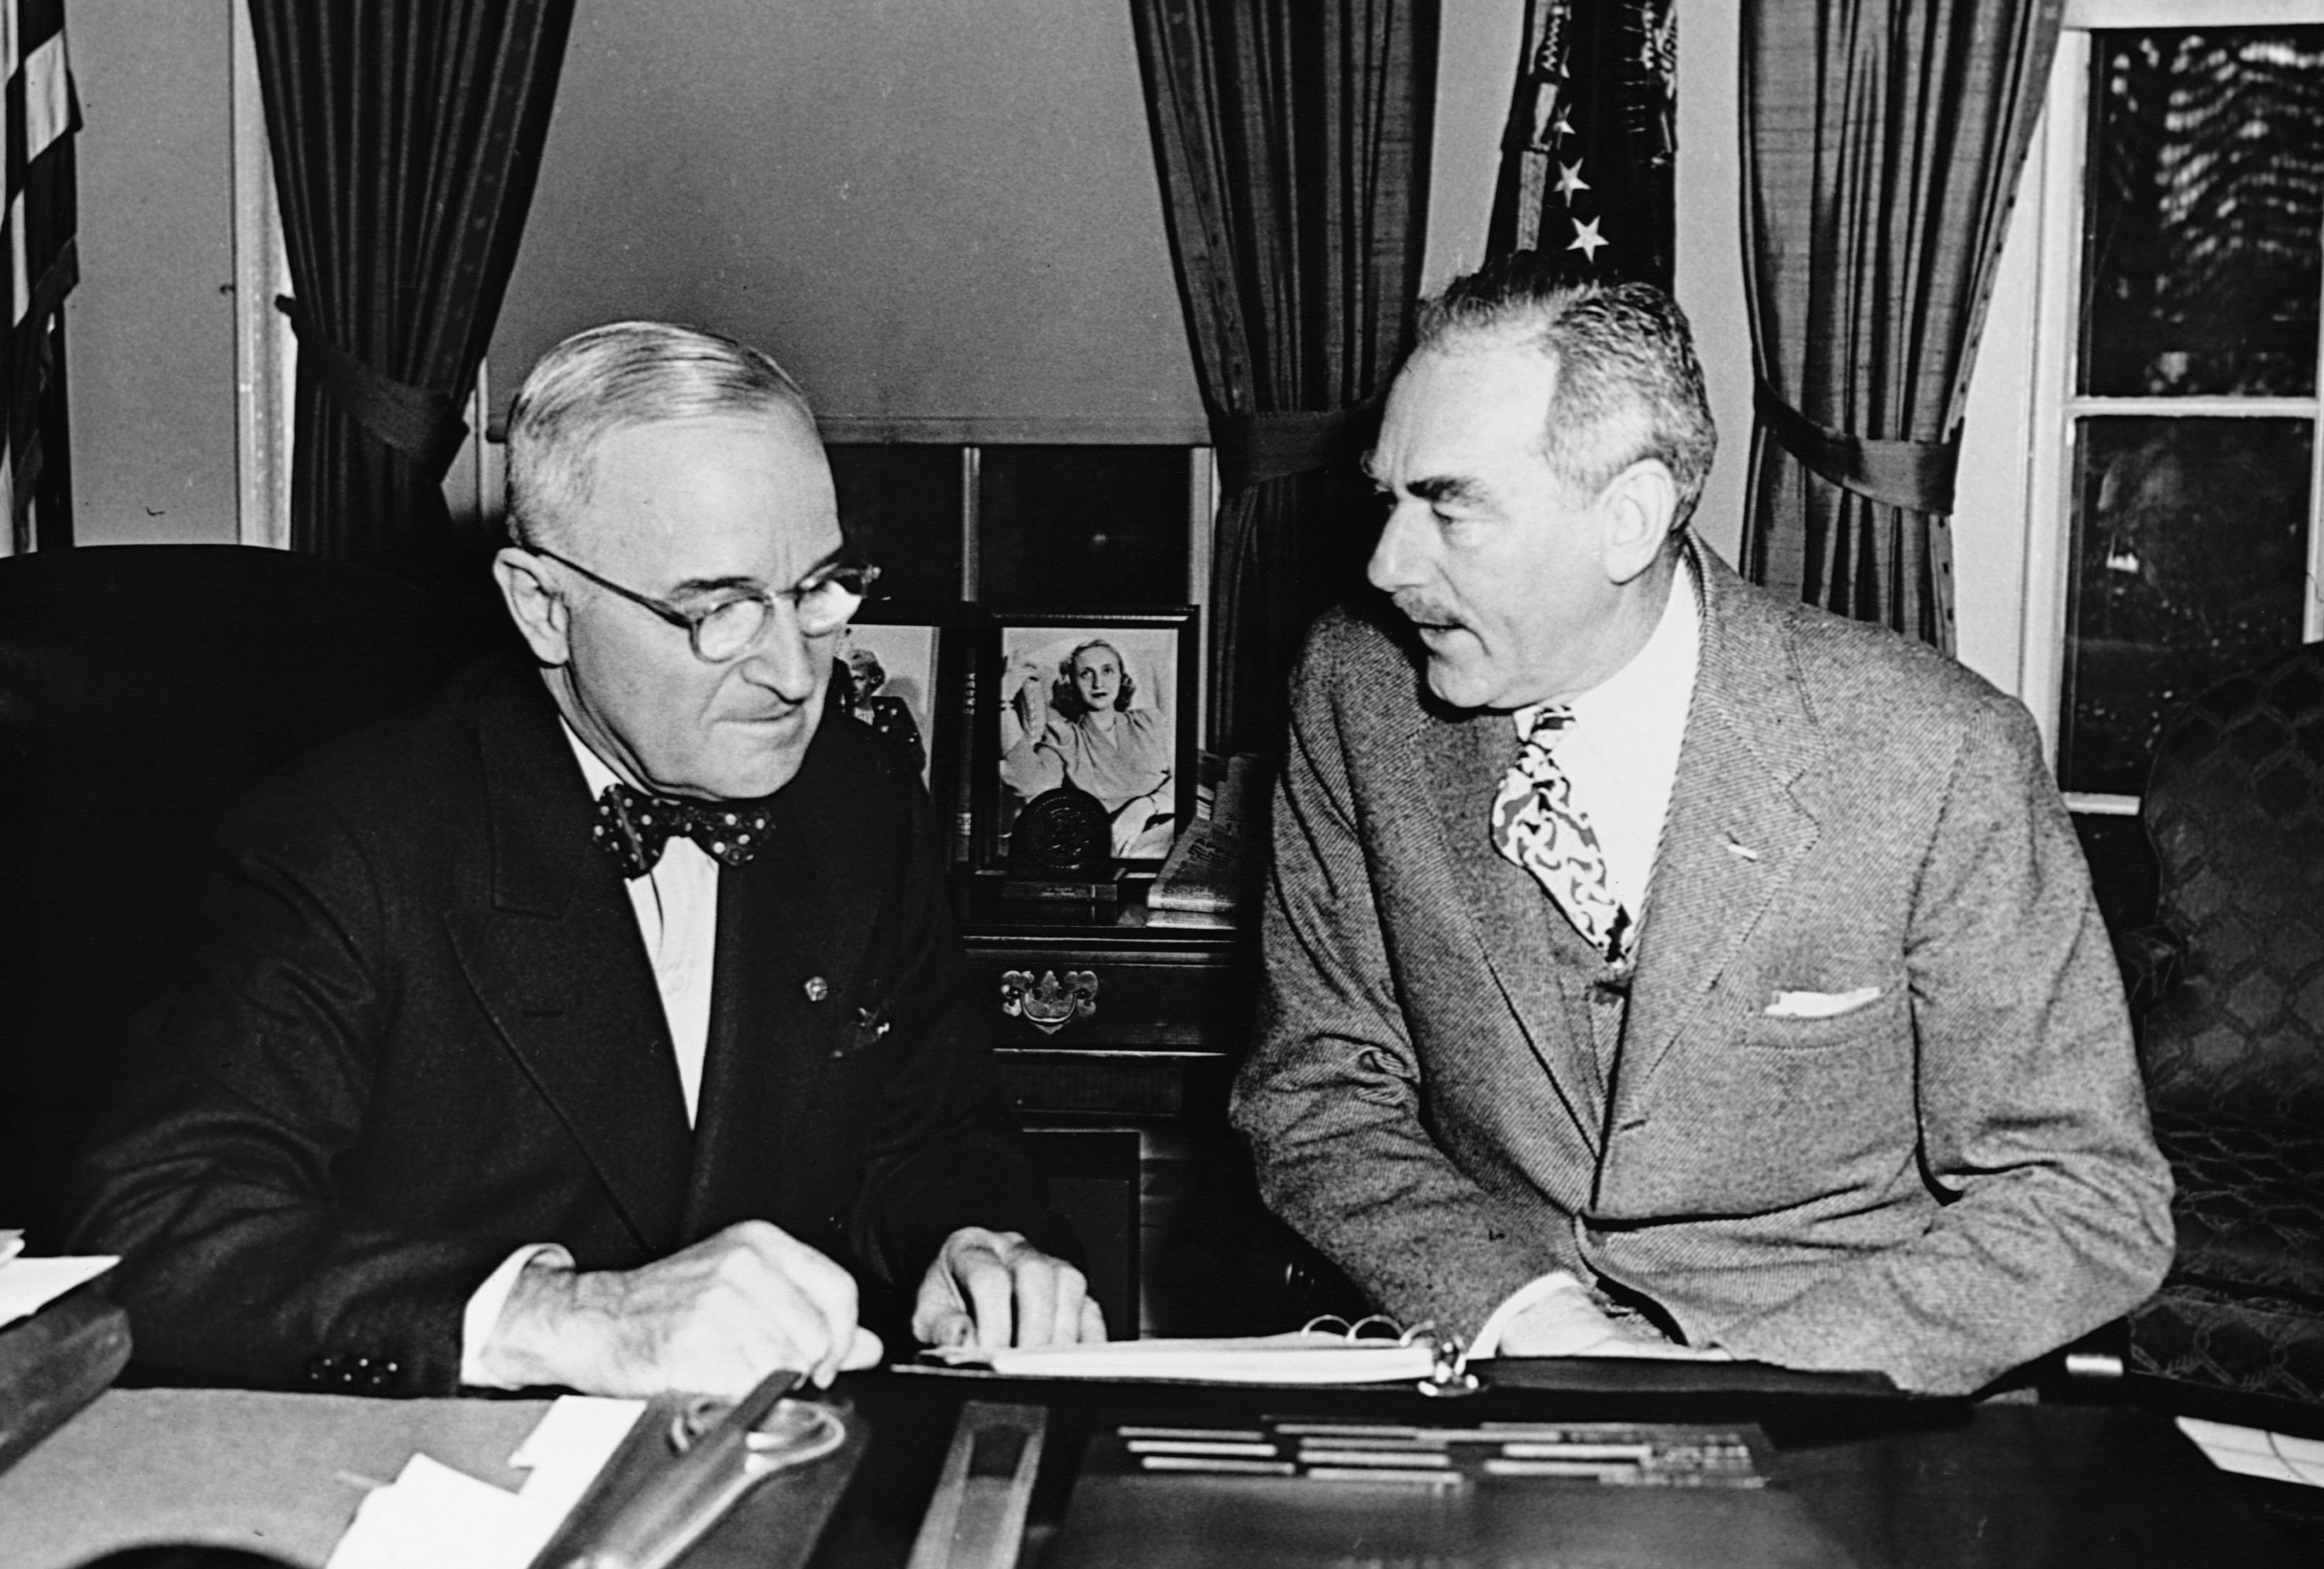 Photograph of Harry S. Truman and Dean Acheson